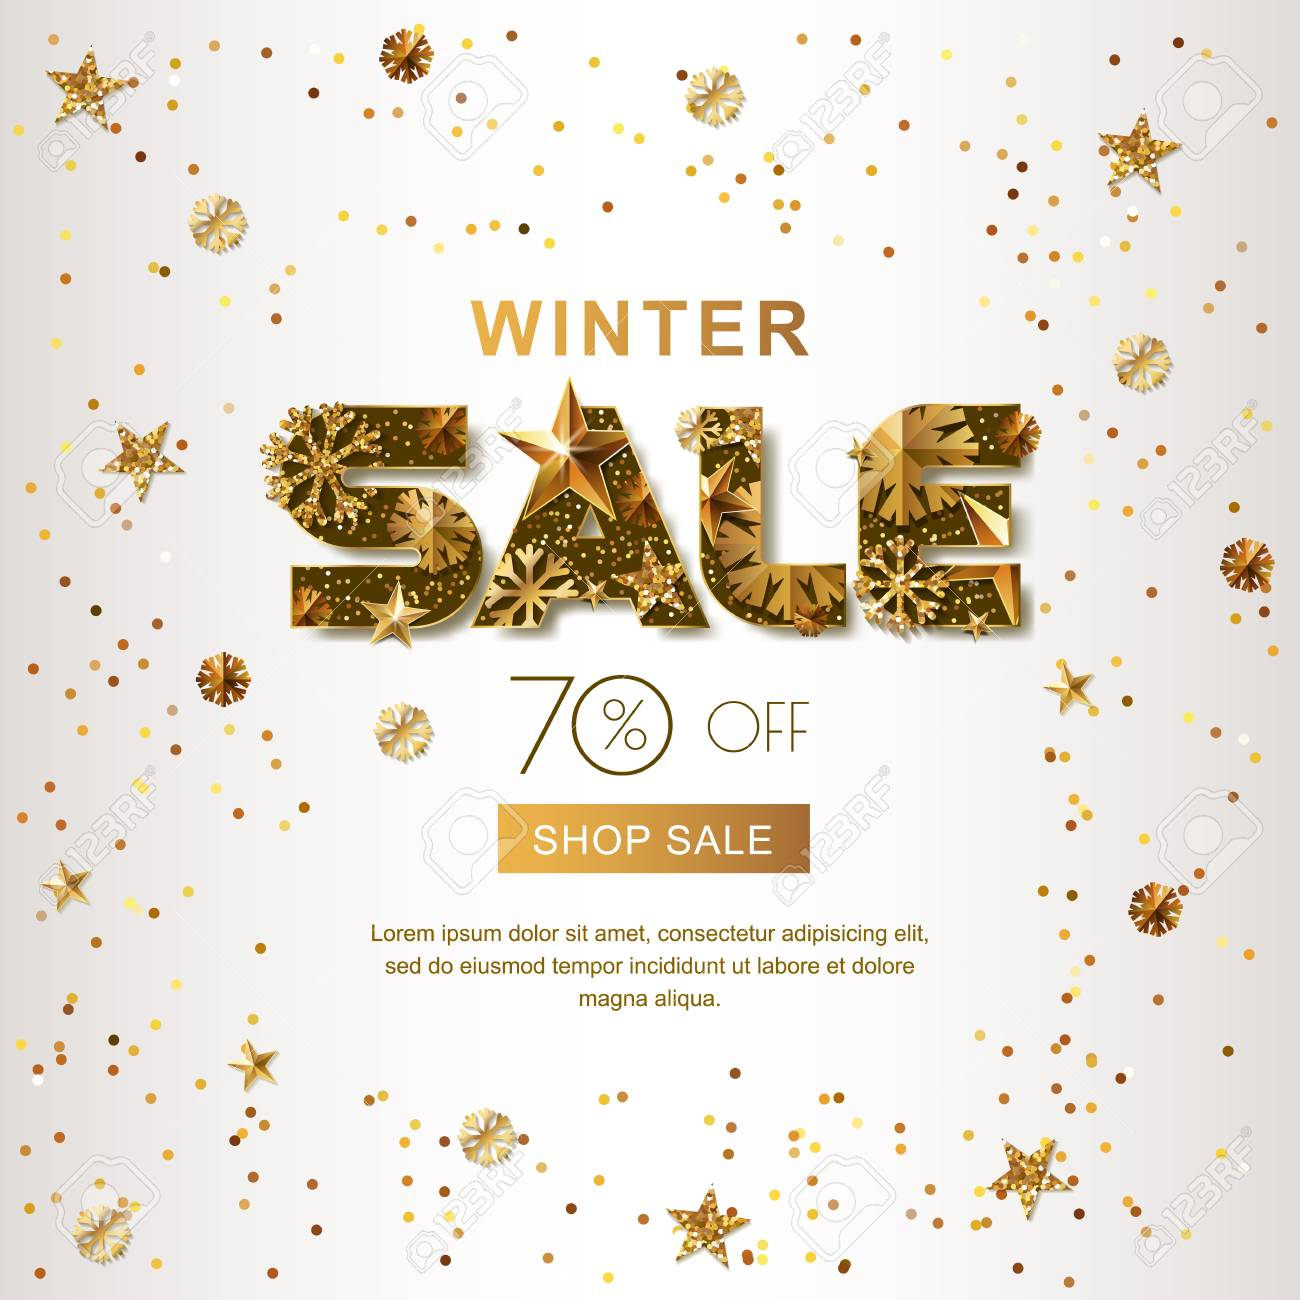 Winter Sale Banners Executive Banners